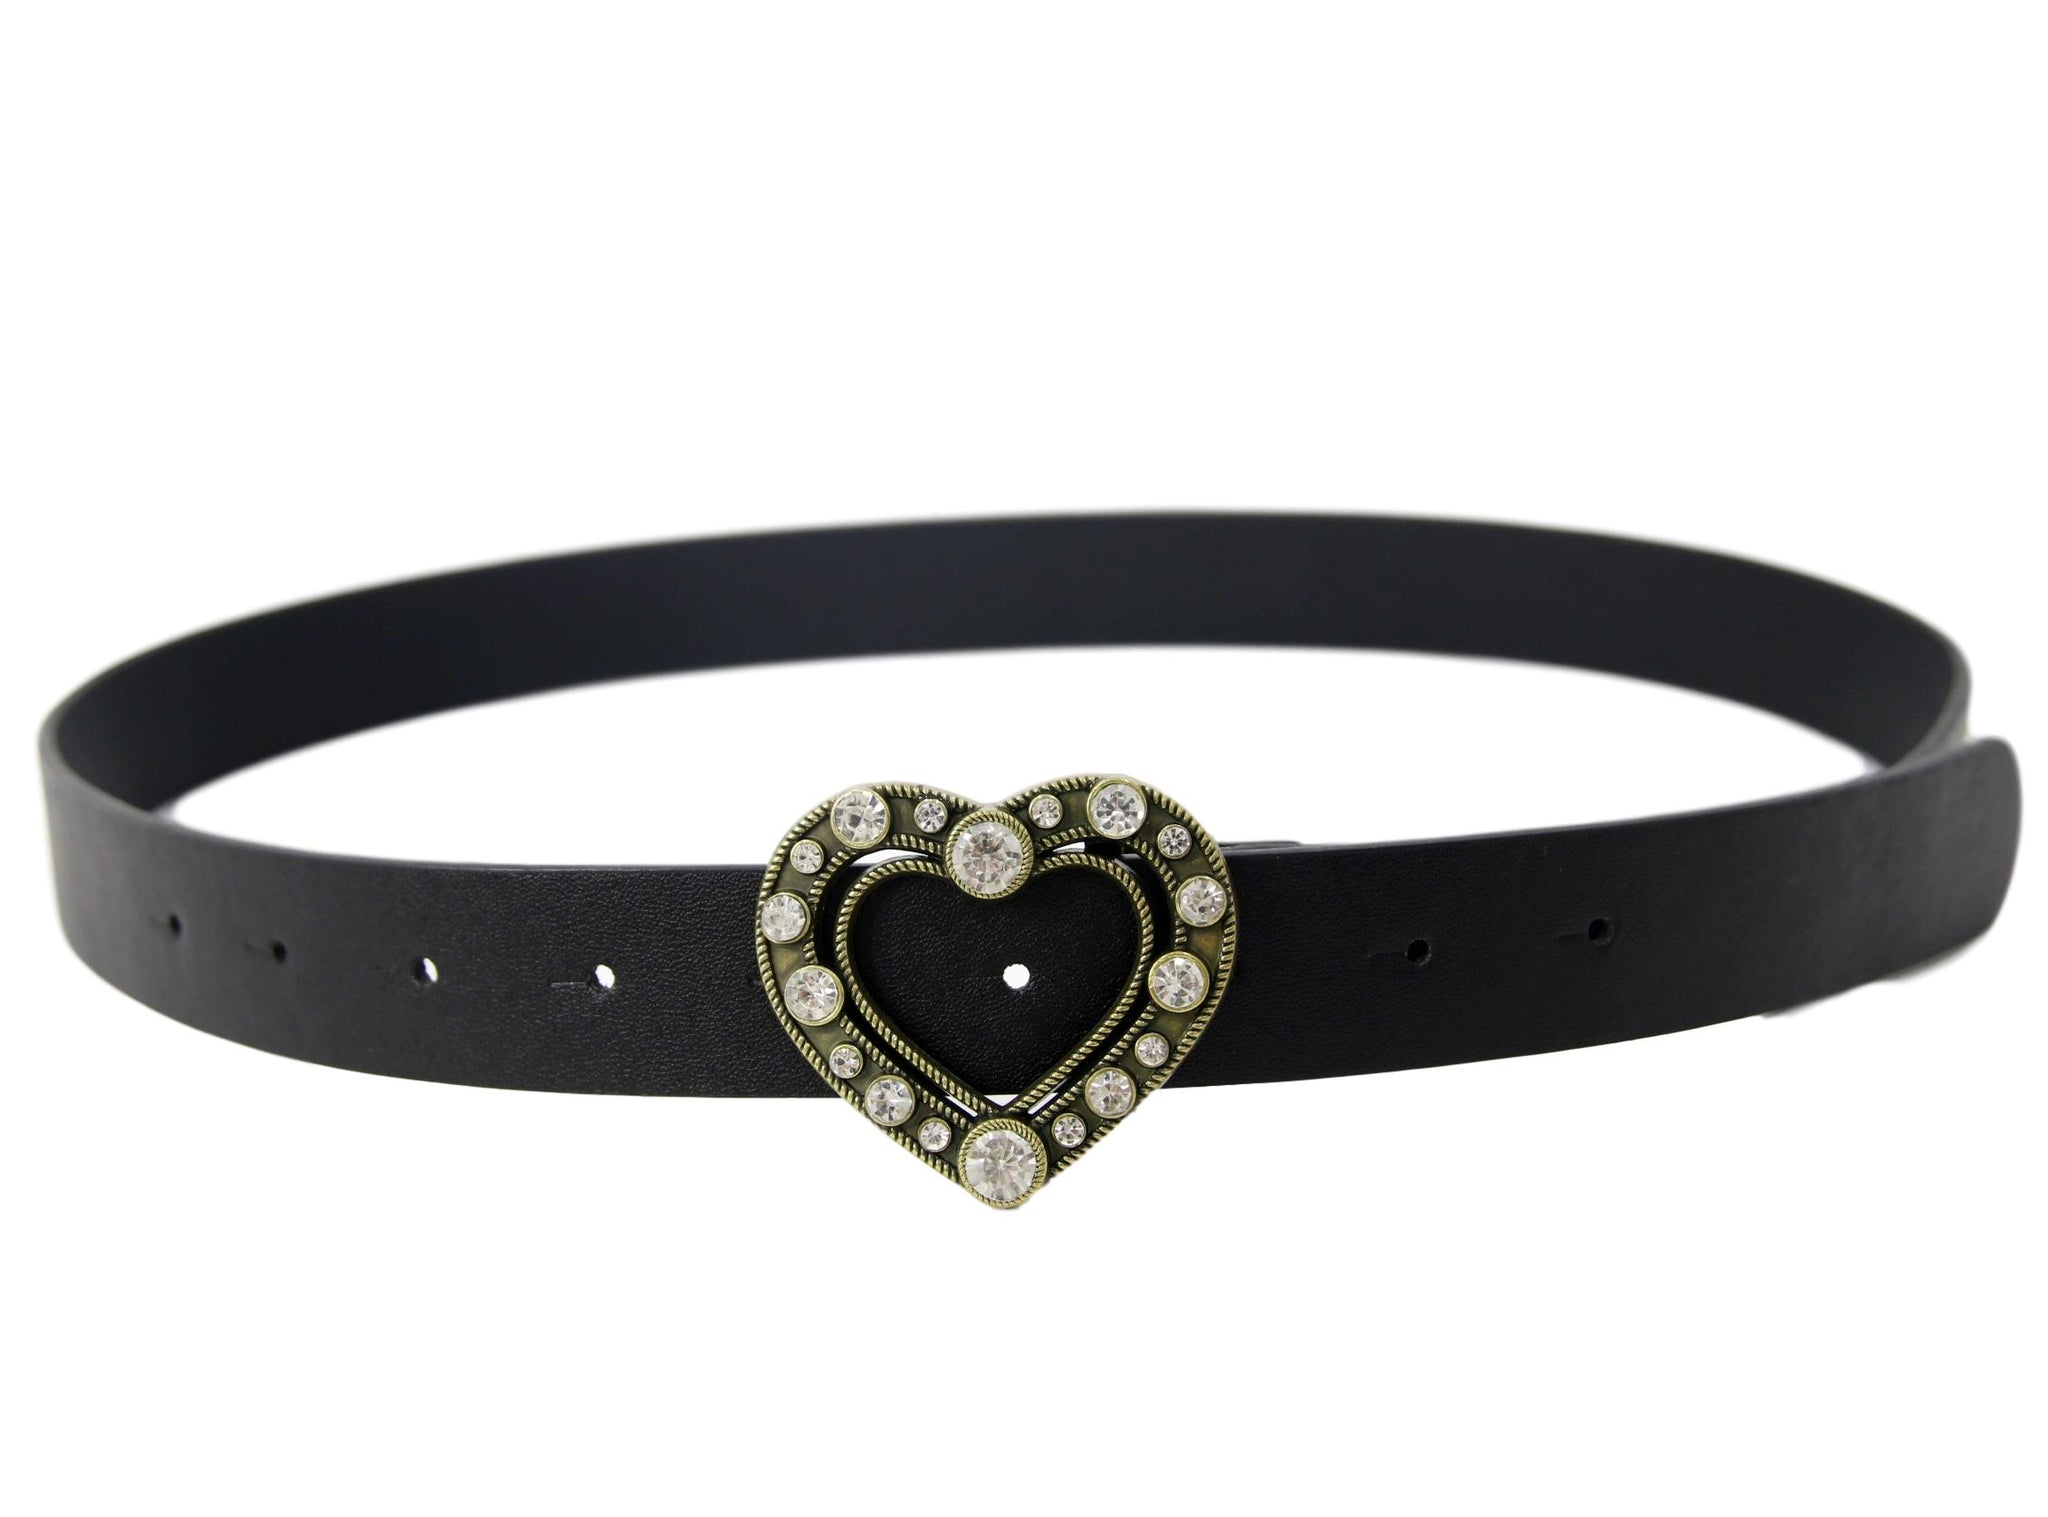 Heart diamante belt